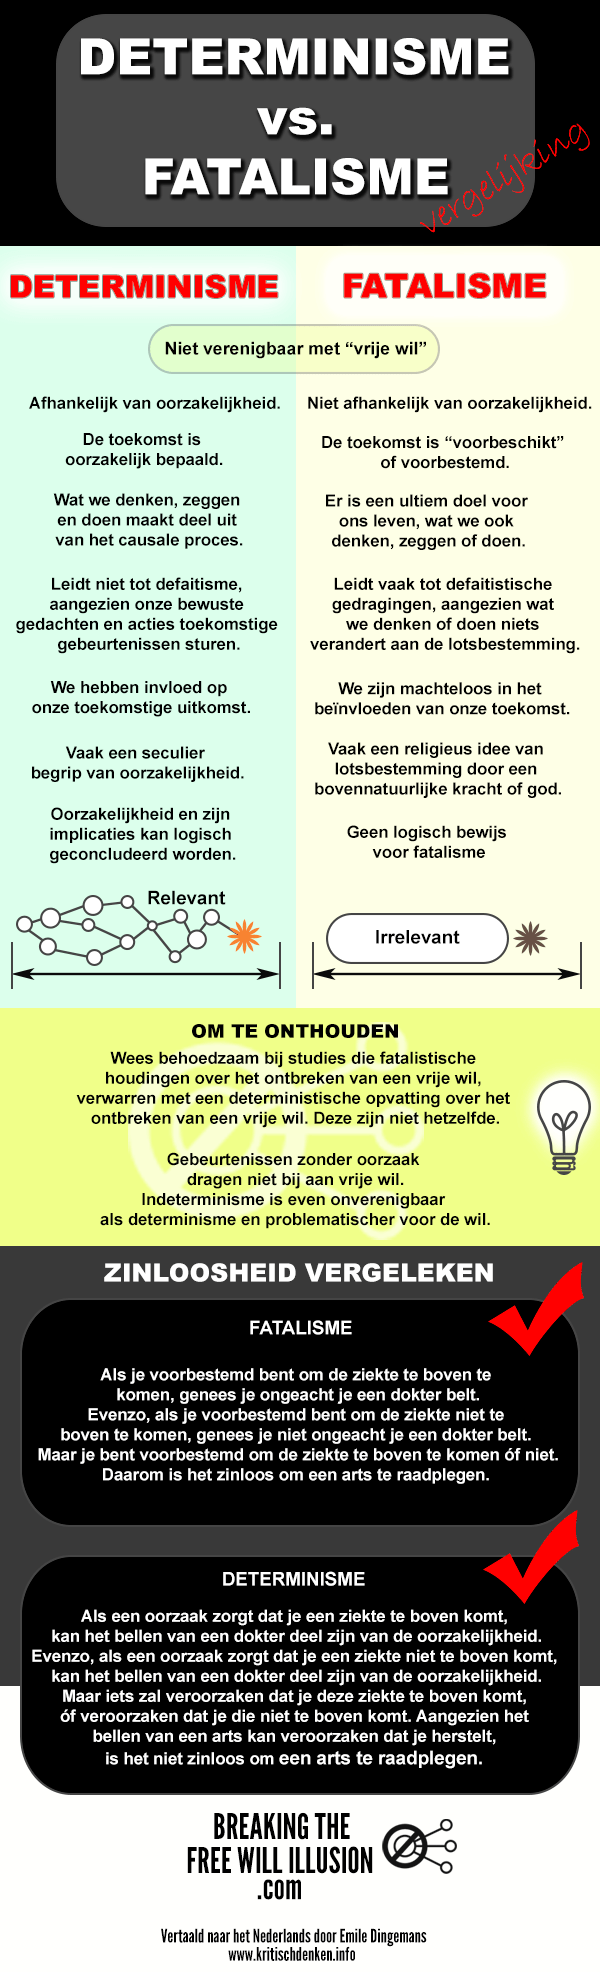 DETERMINISME-VS-FATALISME-infographic-DUTCH